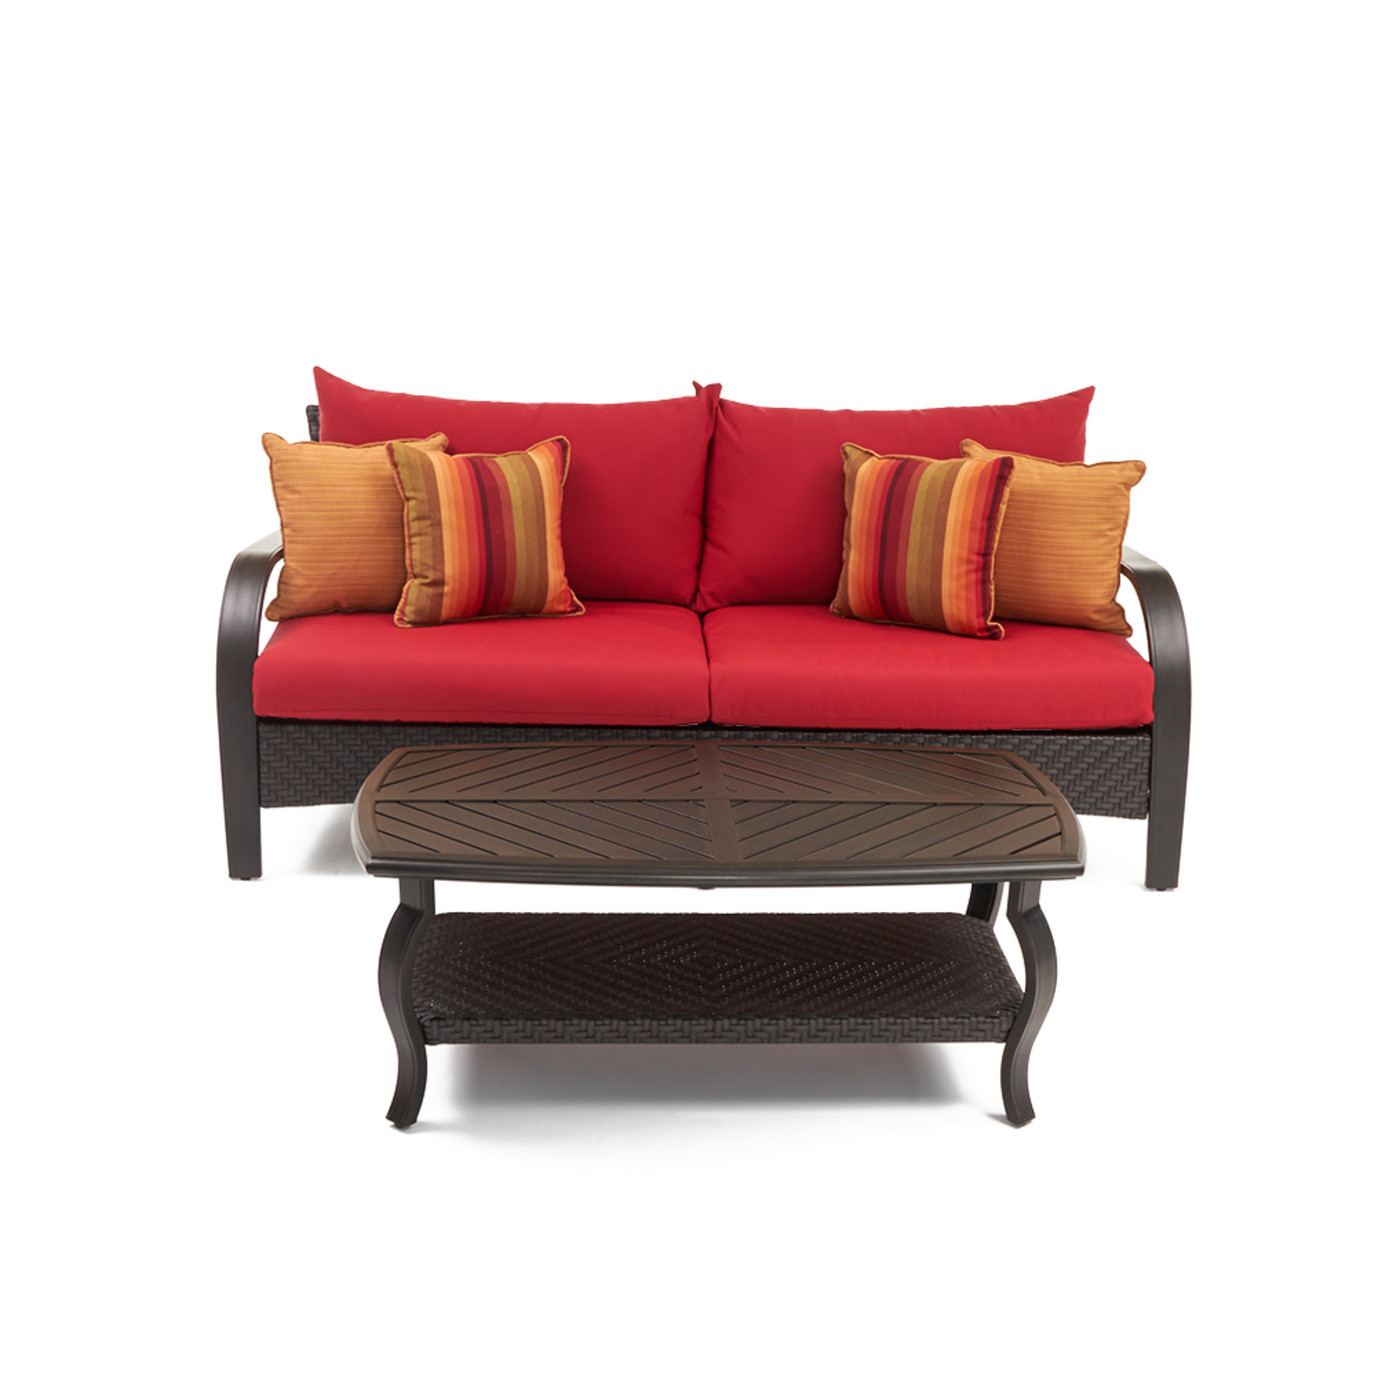 Barcelo™ Sofa & Coffee Table - Sunset Red